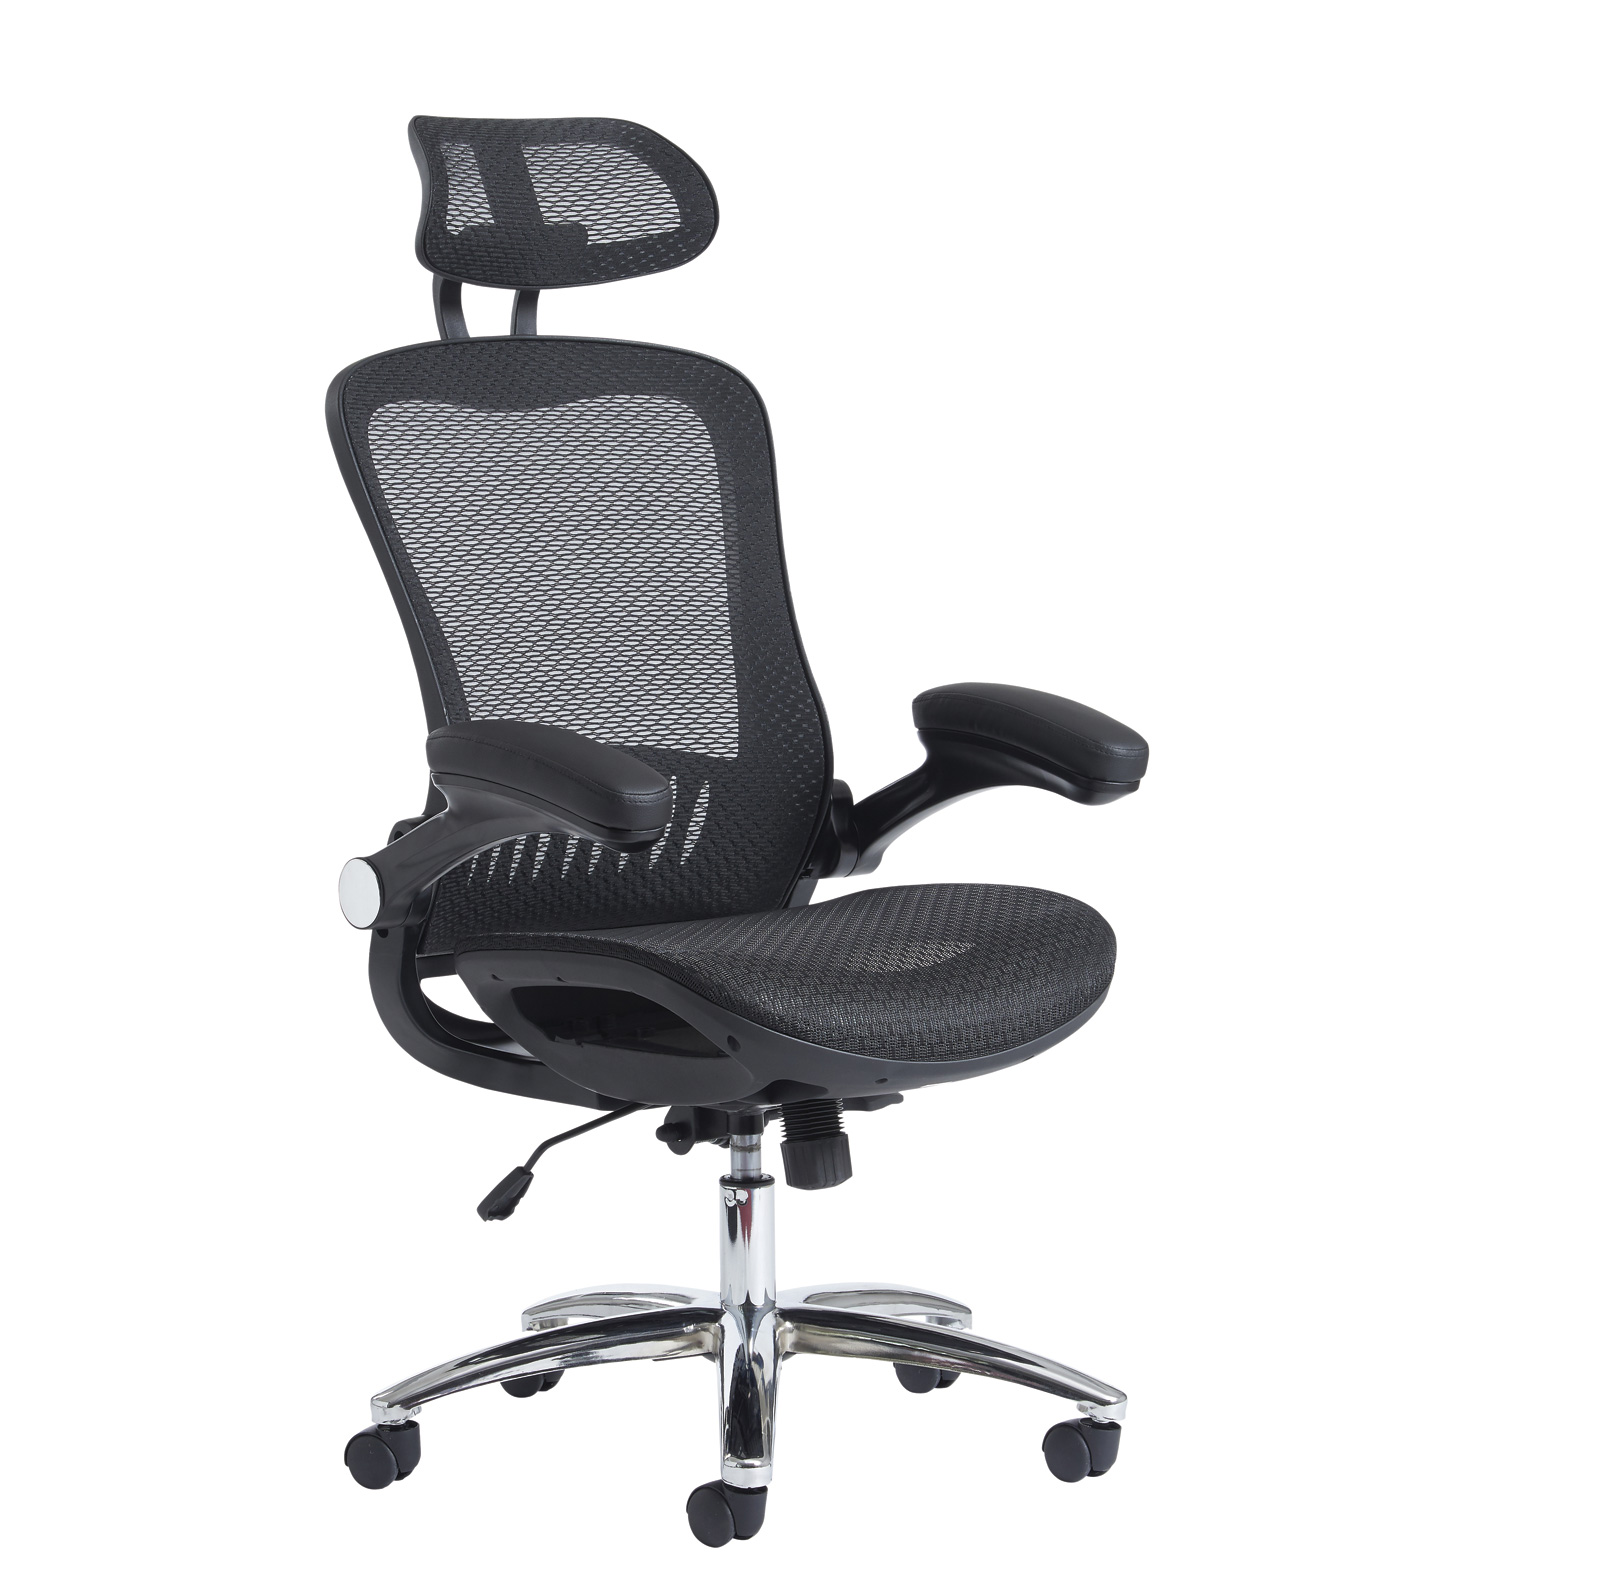 Curva mesh chair - black